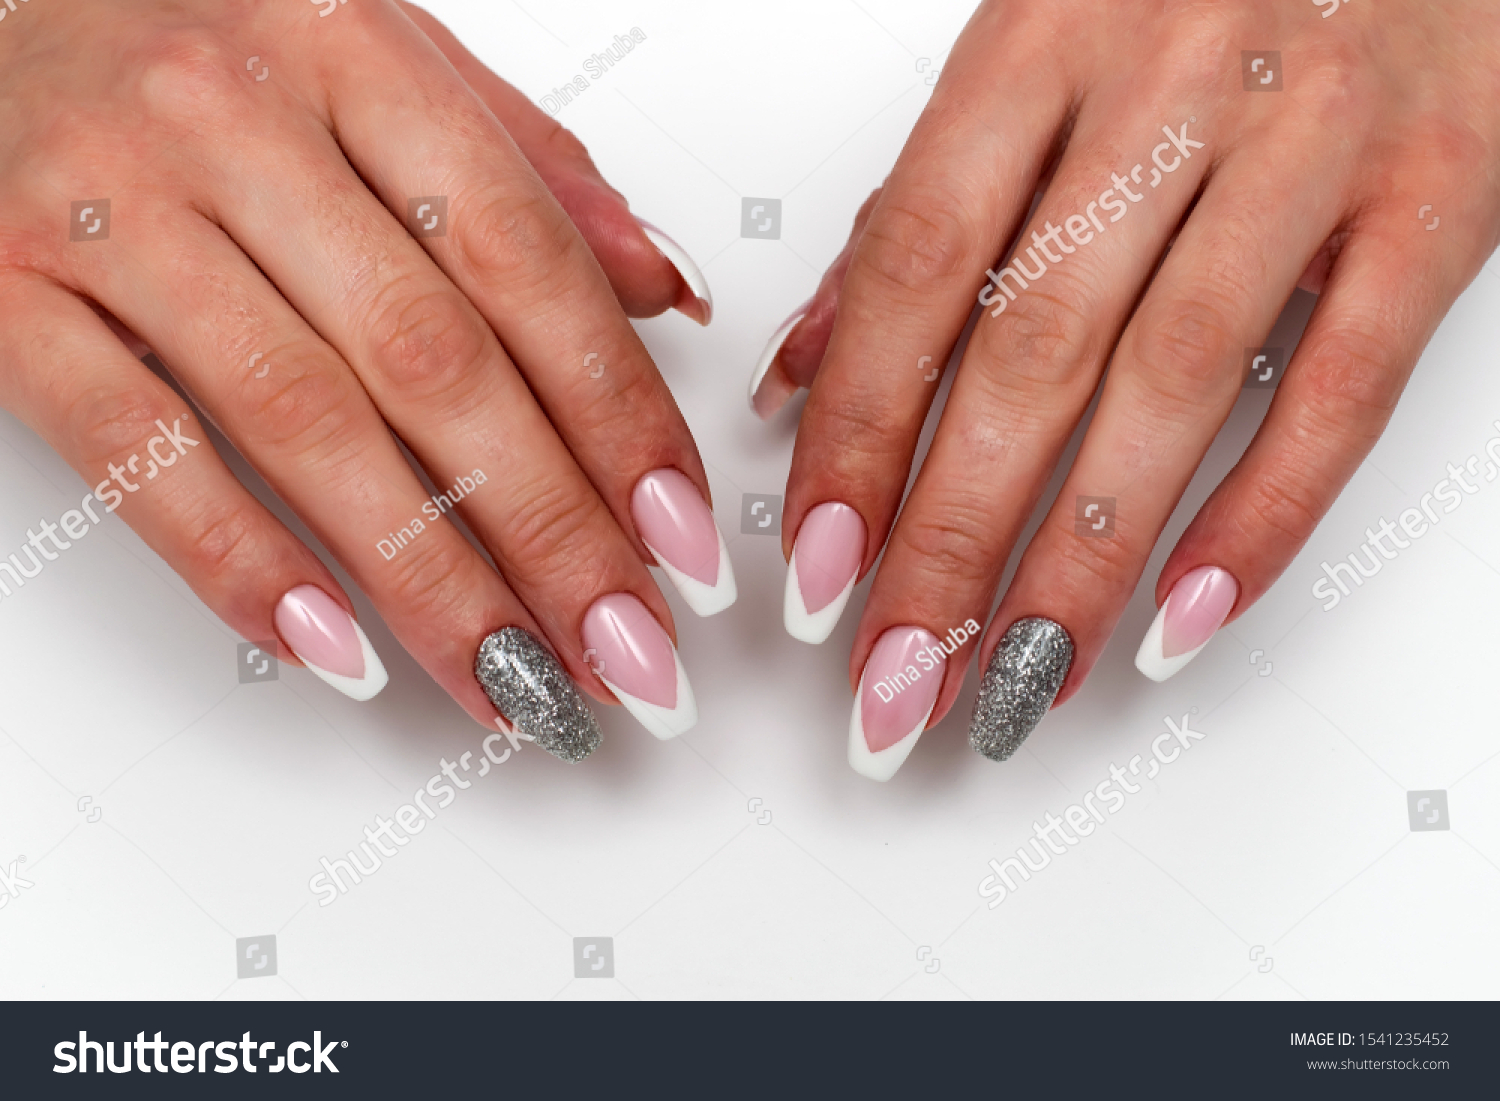 Nails Manicure 2019 Design Wedding Sharp Stock Photo Edit Now